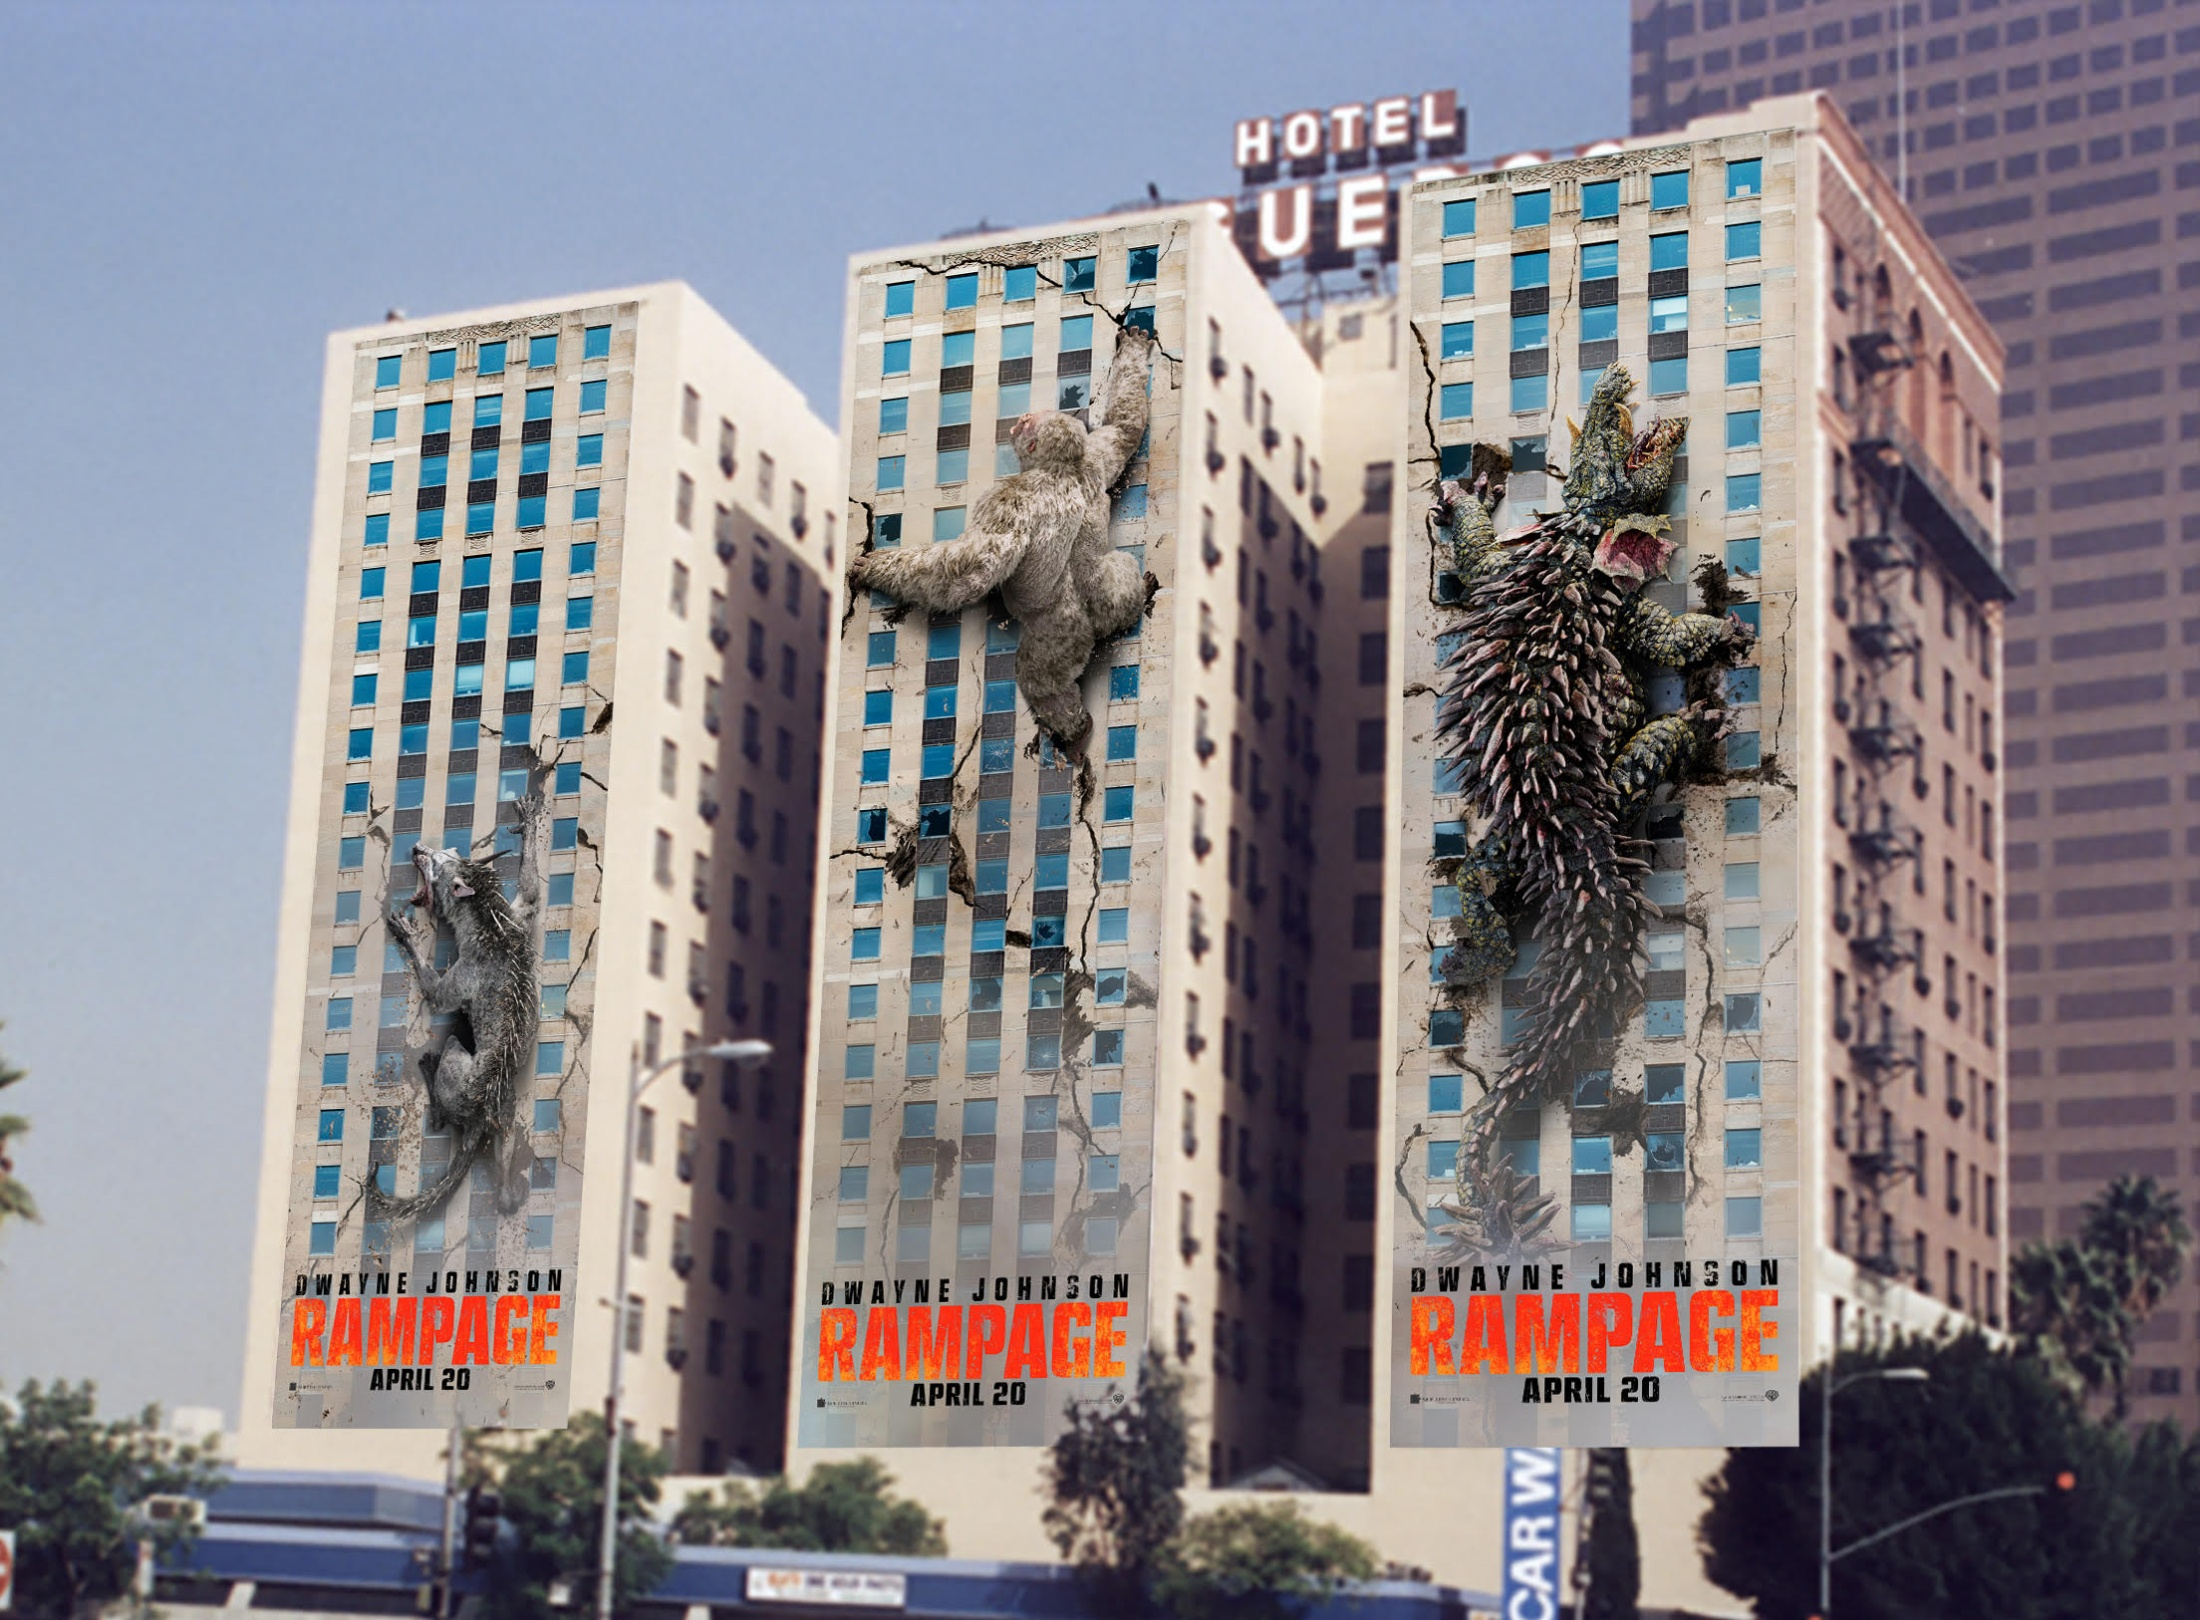 Image Media for Rampage - Hotel Figueroa